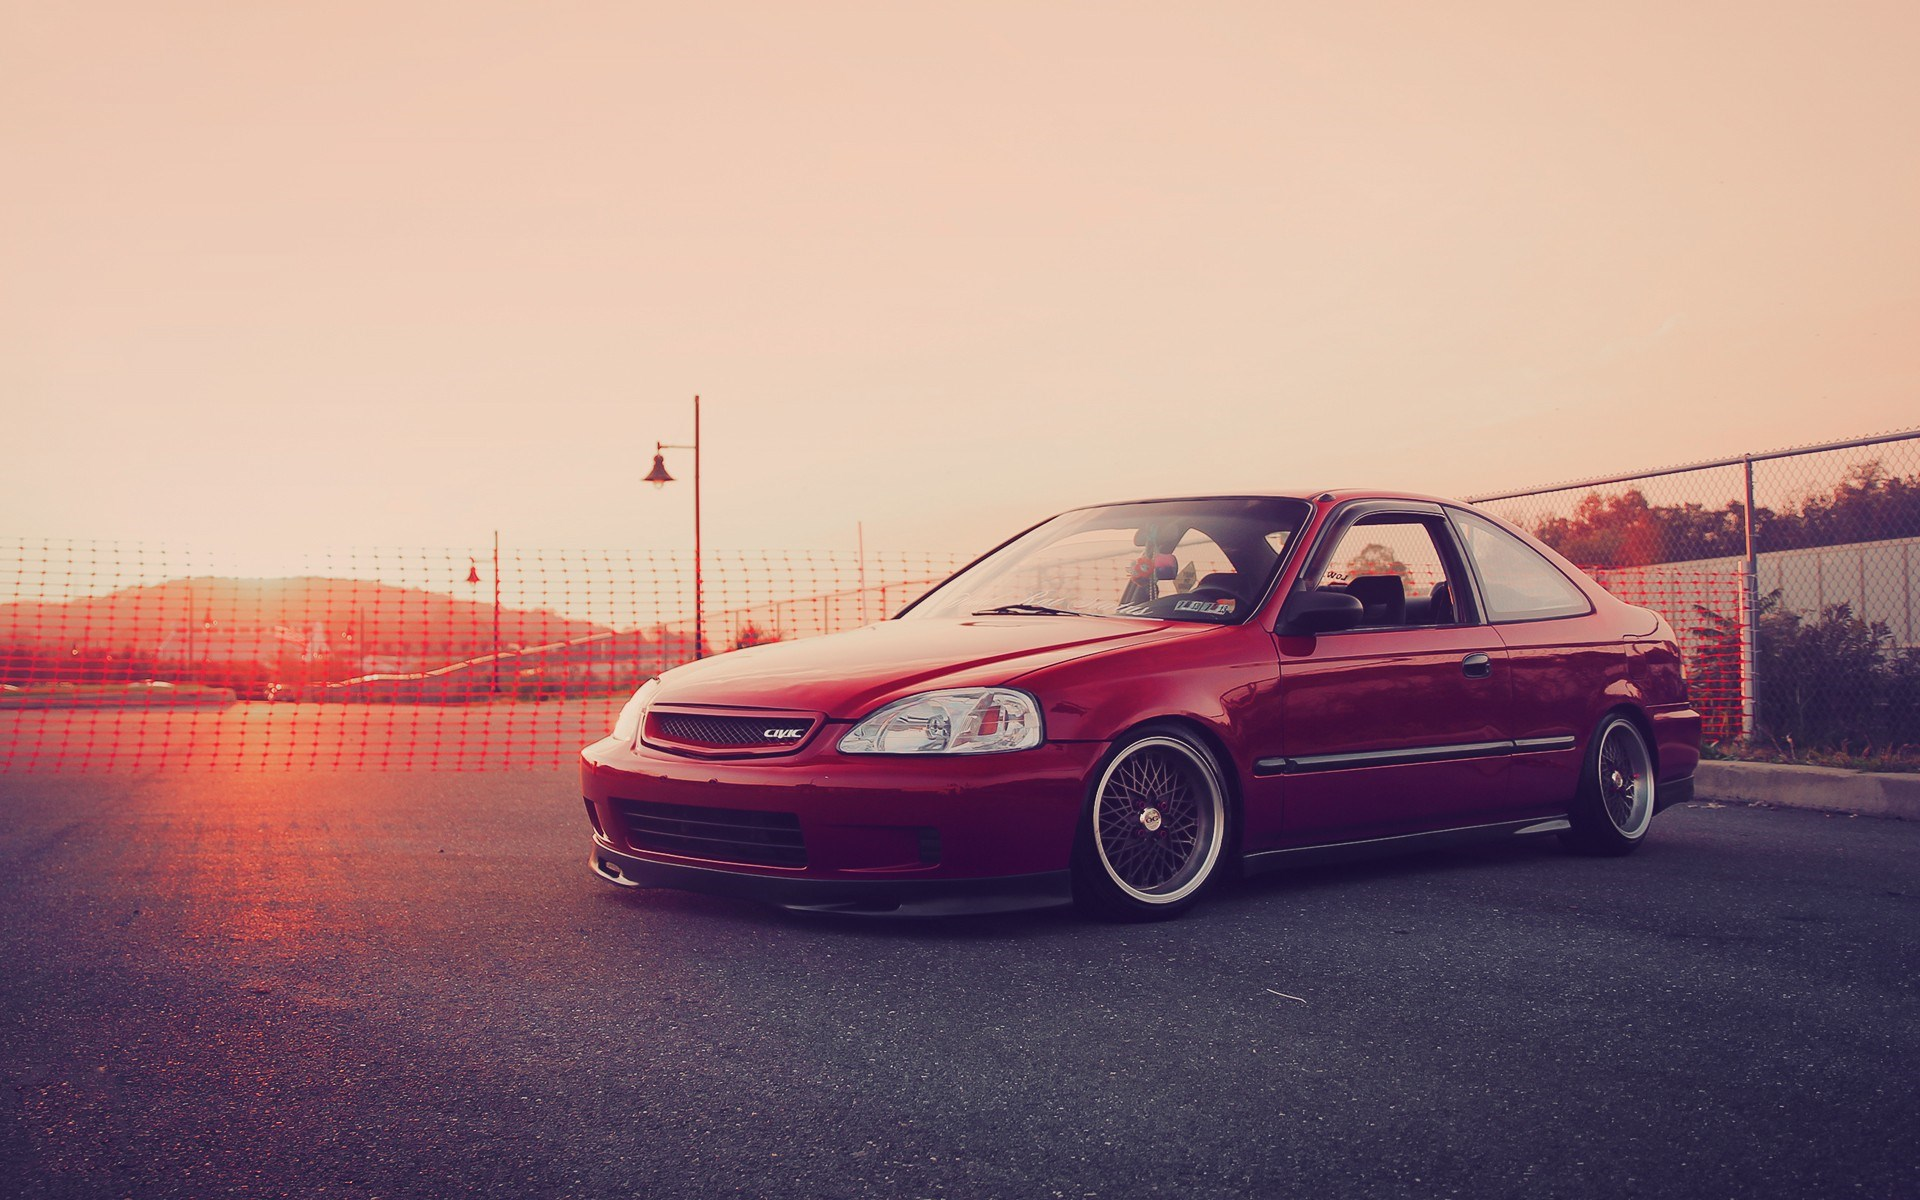 Civic Wallpapers